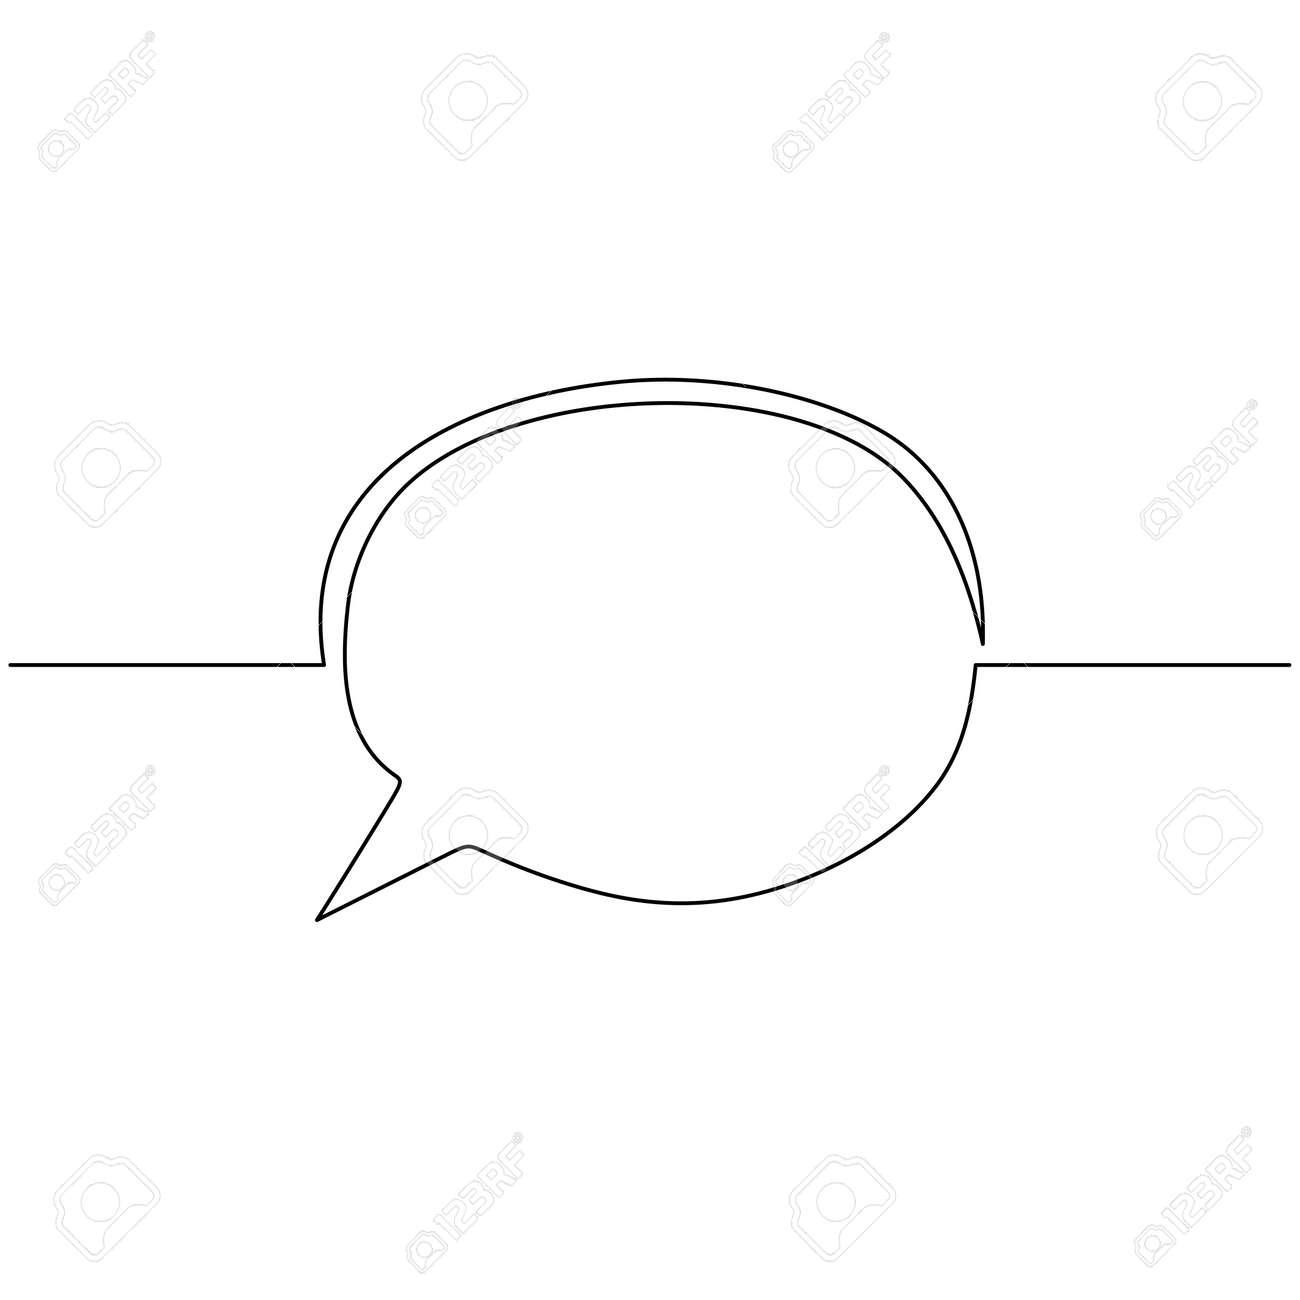 speech bubble continuous line drawing, black and white graphic vector minimalist. One line simple hand drawn. - 173207432